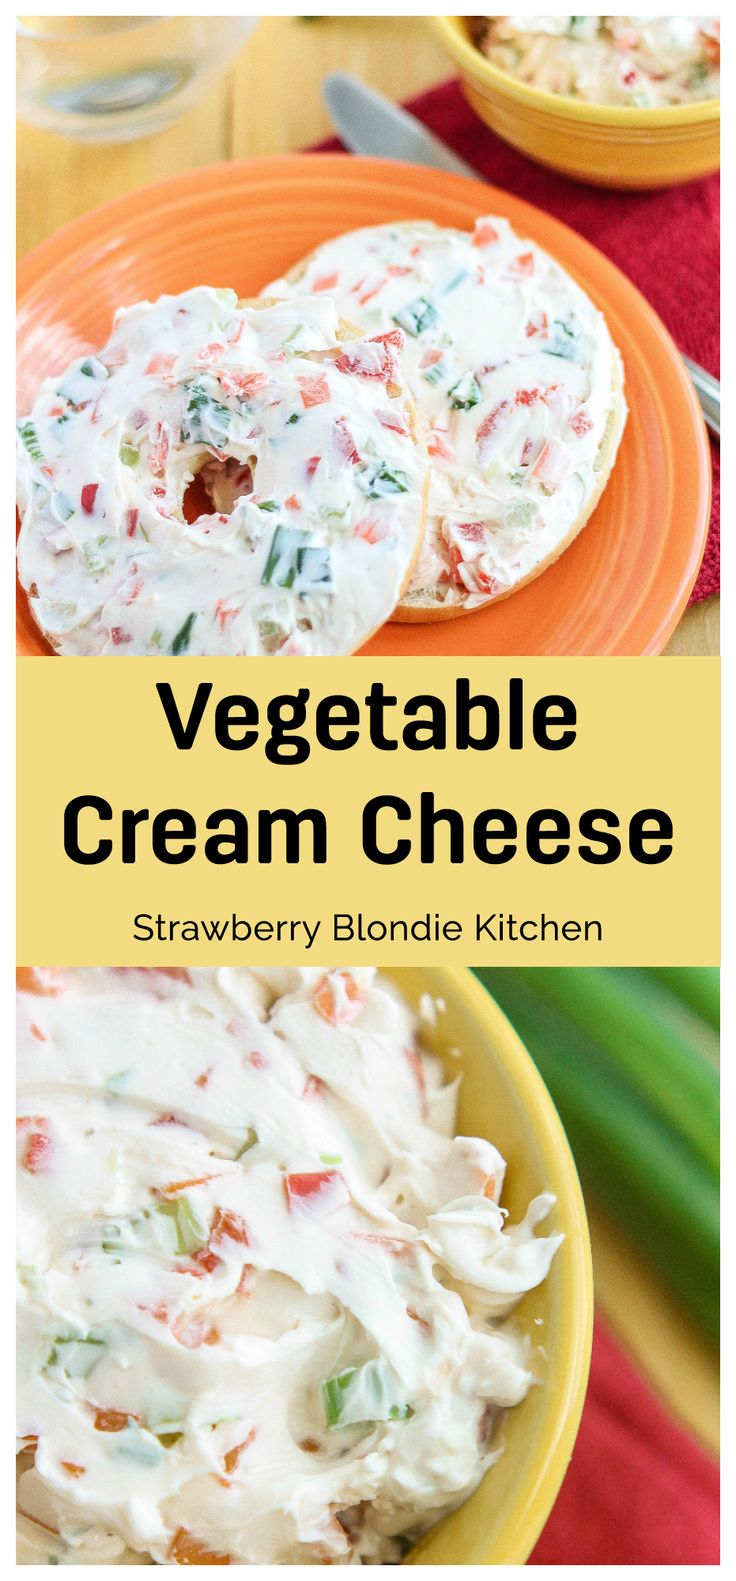 Start your day off with this delicious vegetable cream cheese spread.  Perfect on bagels, english muffins or even crackers for a mid afternoon snack.  Strawberry Blondie Kitchen